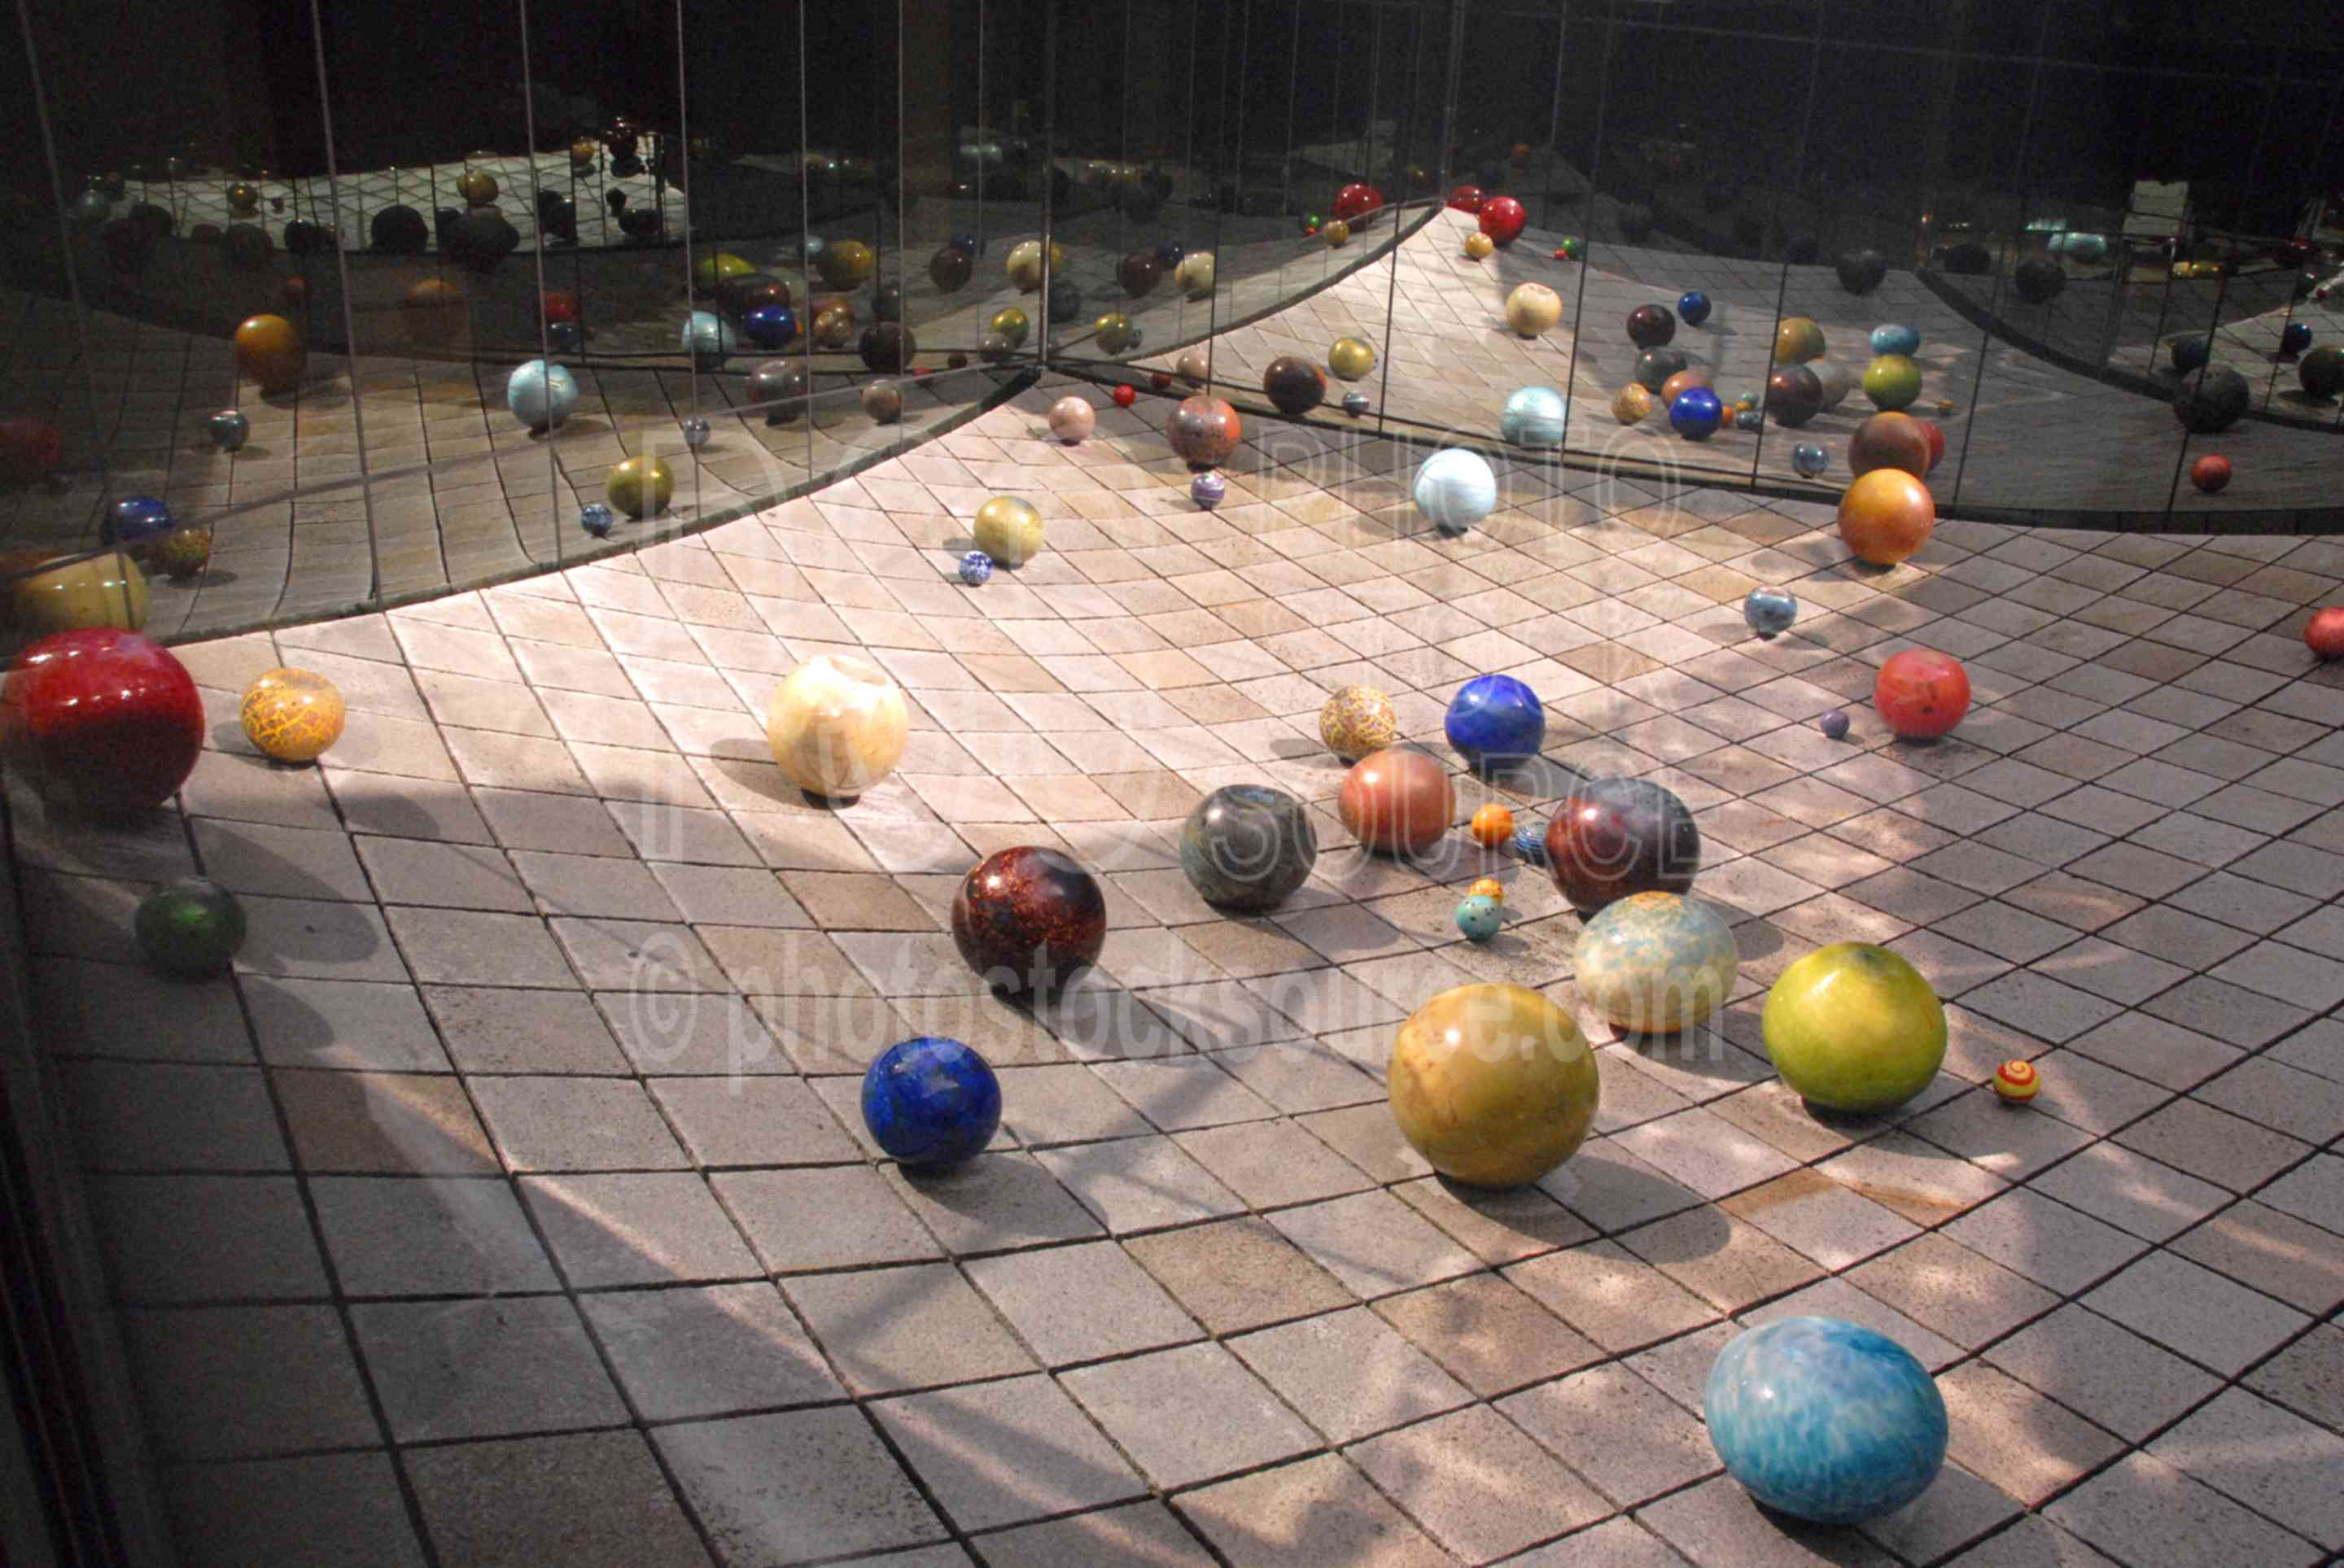 Ma Chihuly's Floats,dale chihuly,glass,museum,art,color,spheres,globes,museums